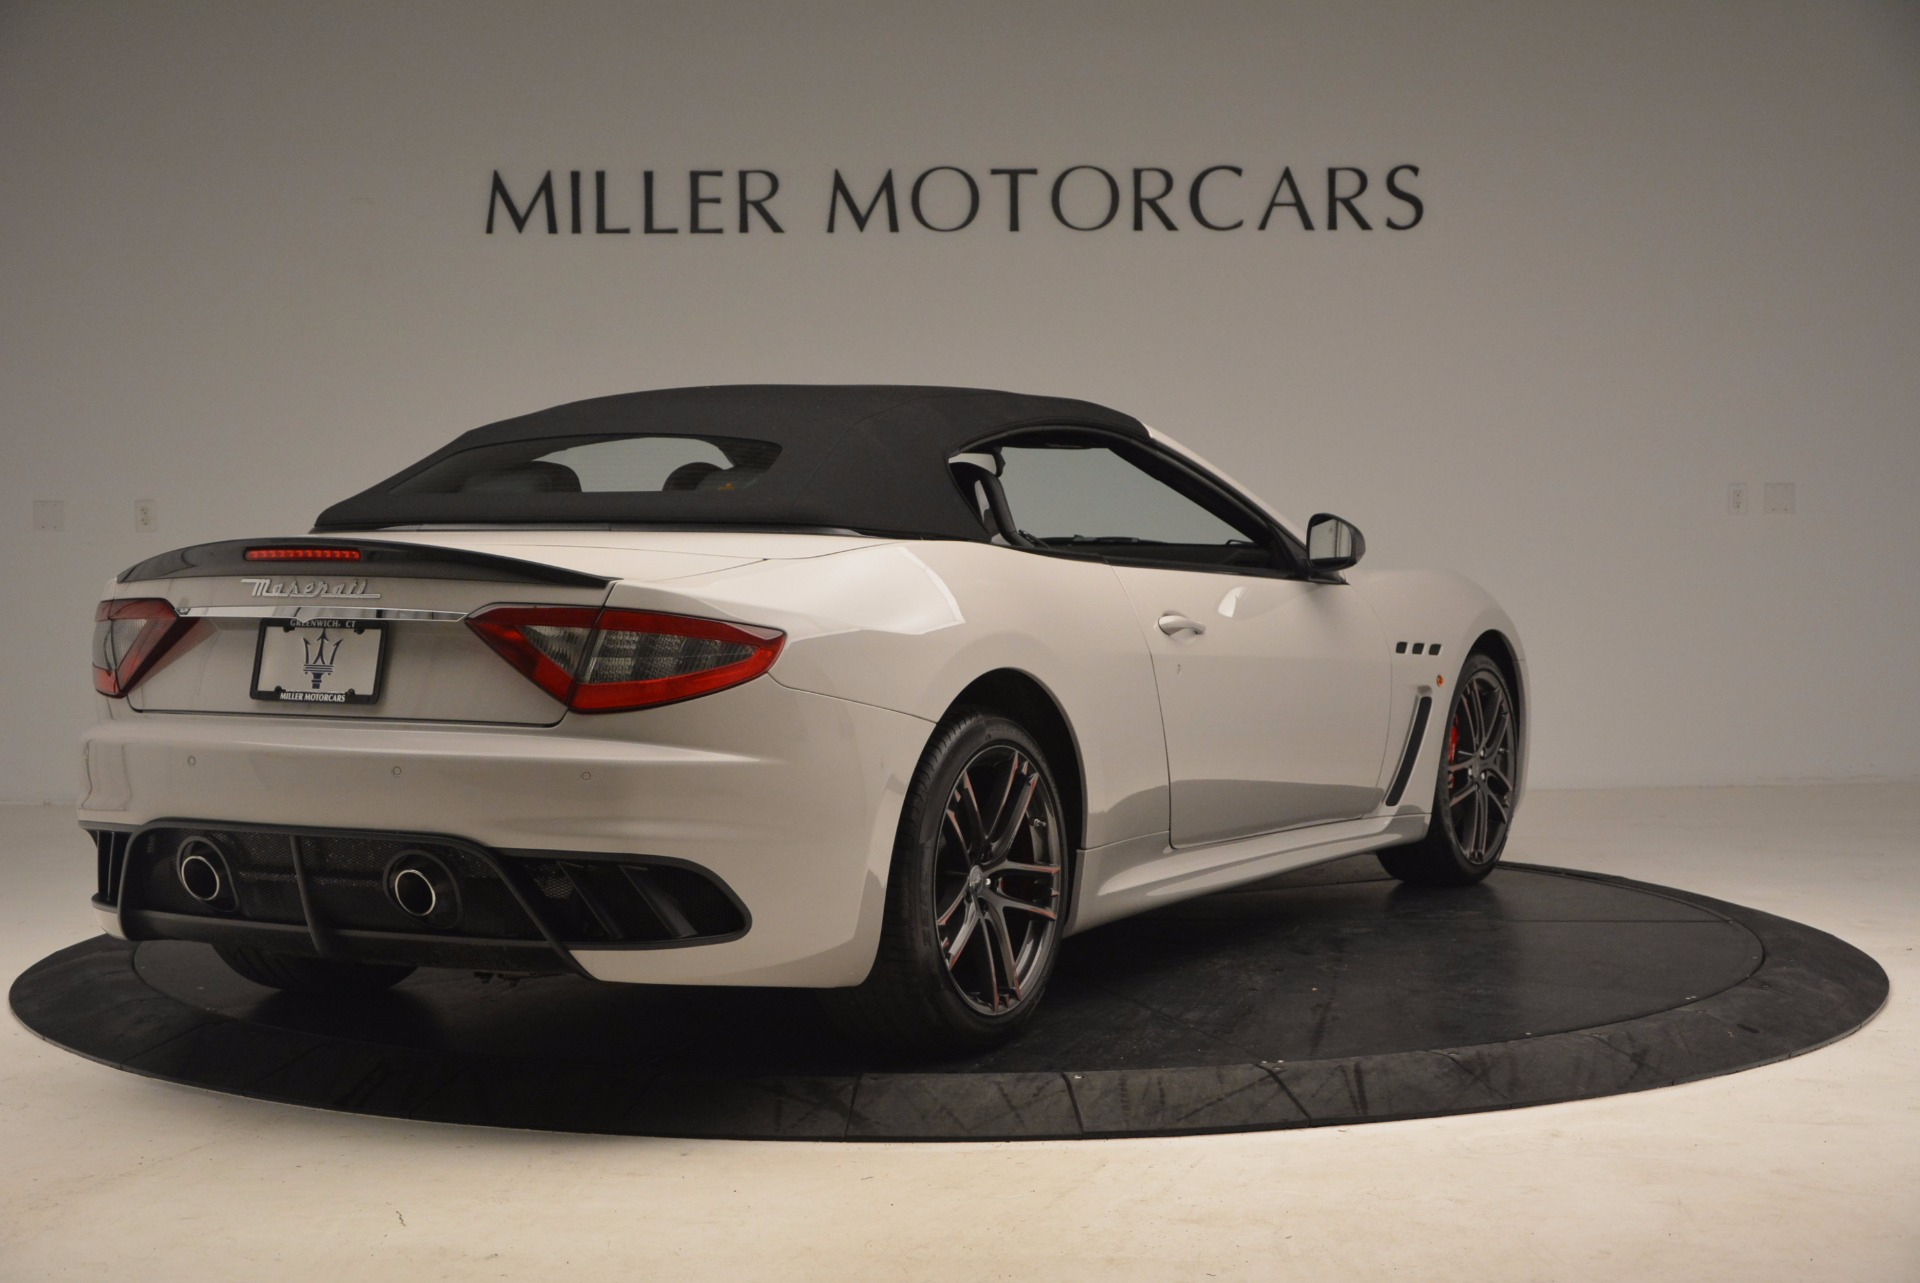 Used 2015 Maserati GranTurismo MC Centennial For Sale In Westport, CT 1107_p19